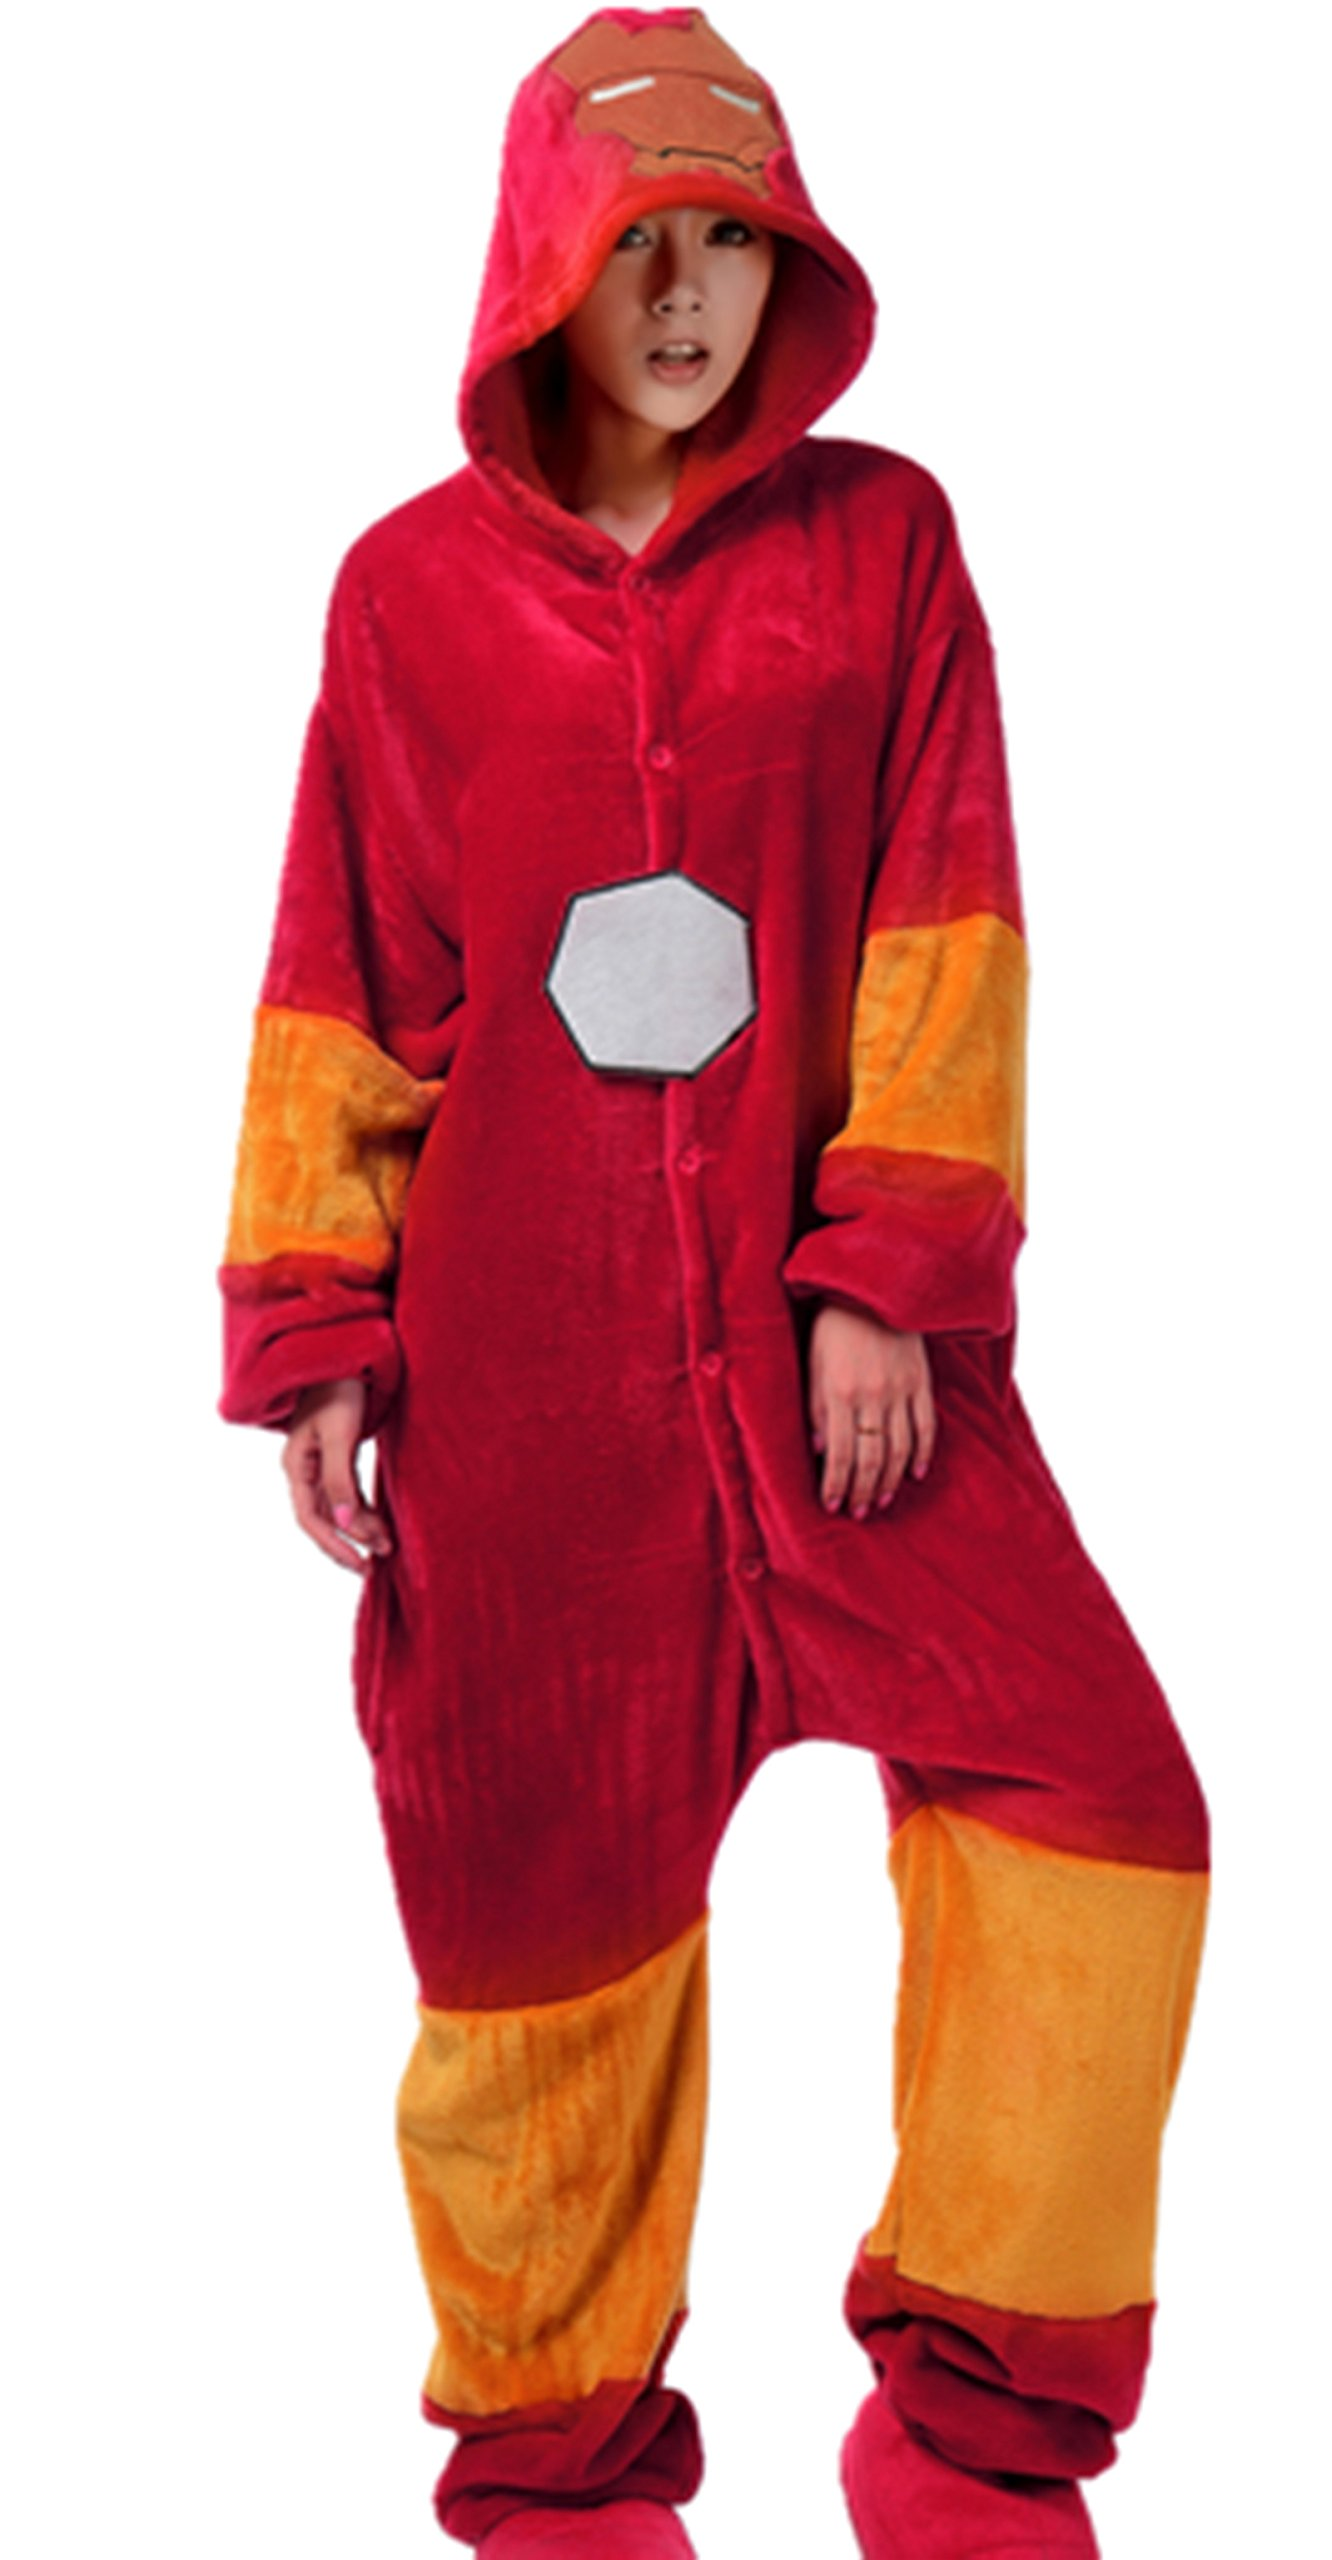 Iron Man Kigurumi Pajamas Adult Anime Cosplay Costume Onesies